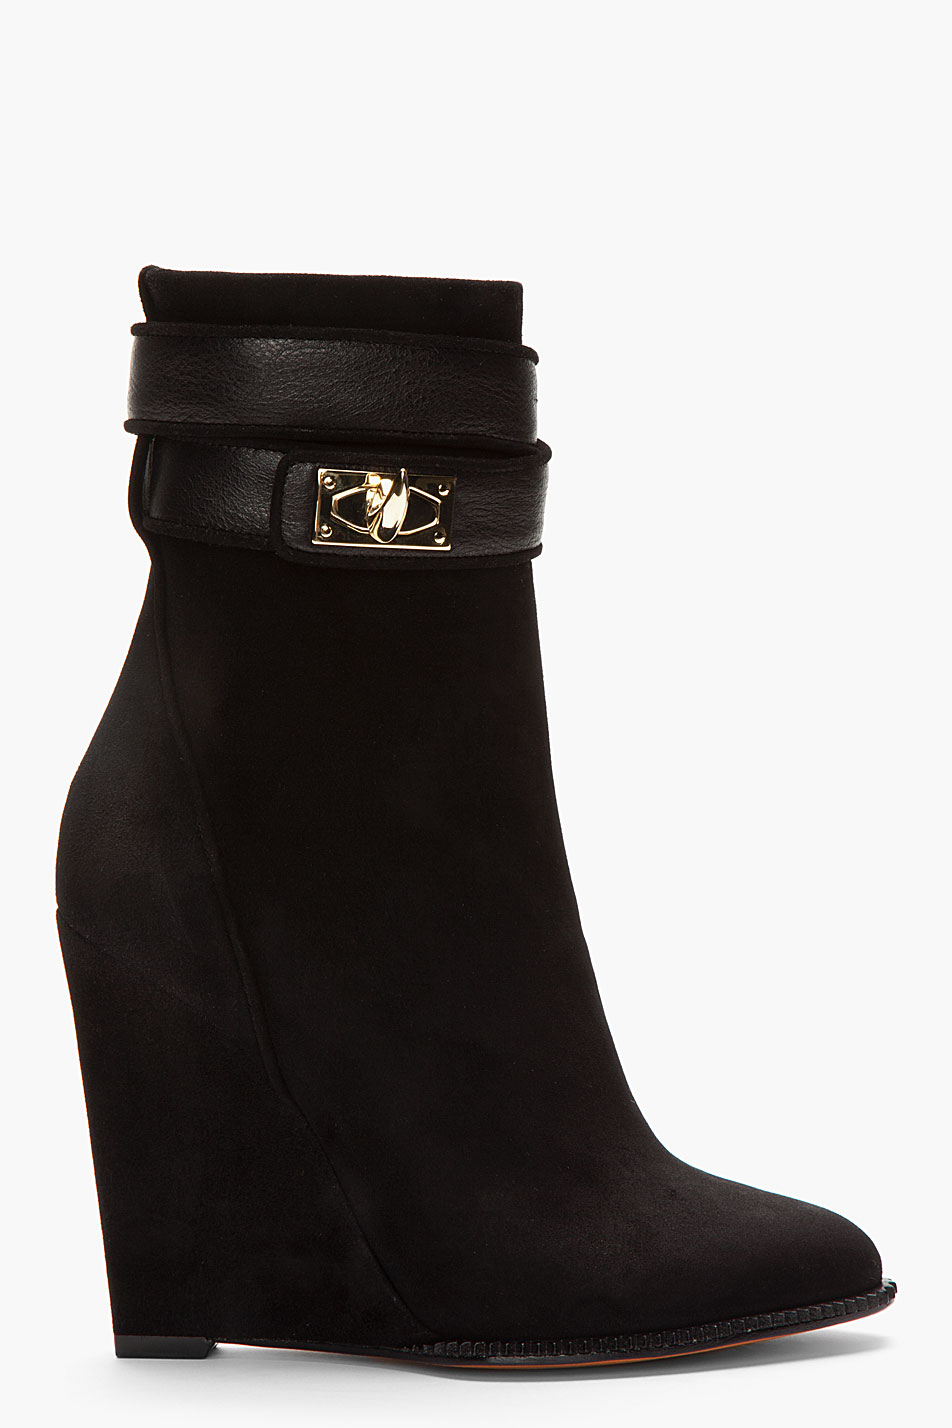 Givenchy Black Suede Shark Lock Ankle Boots In Black Lyst